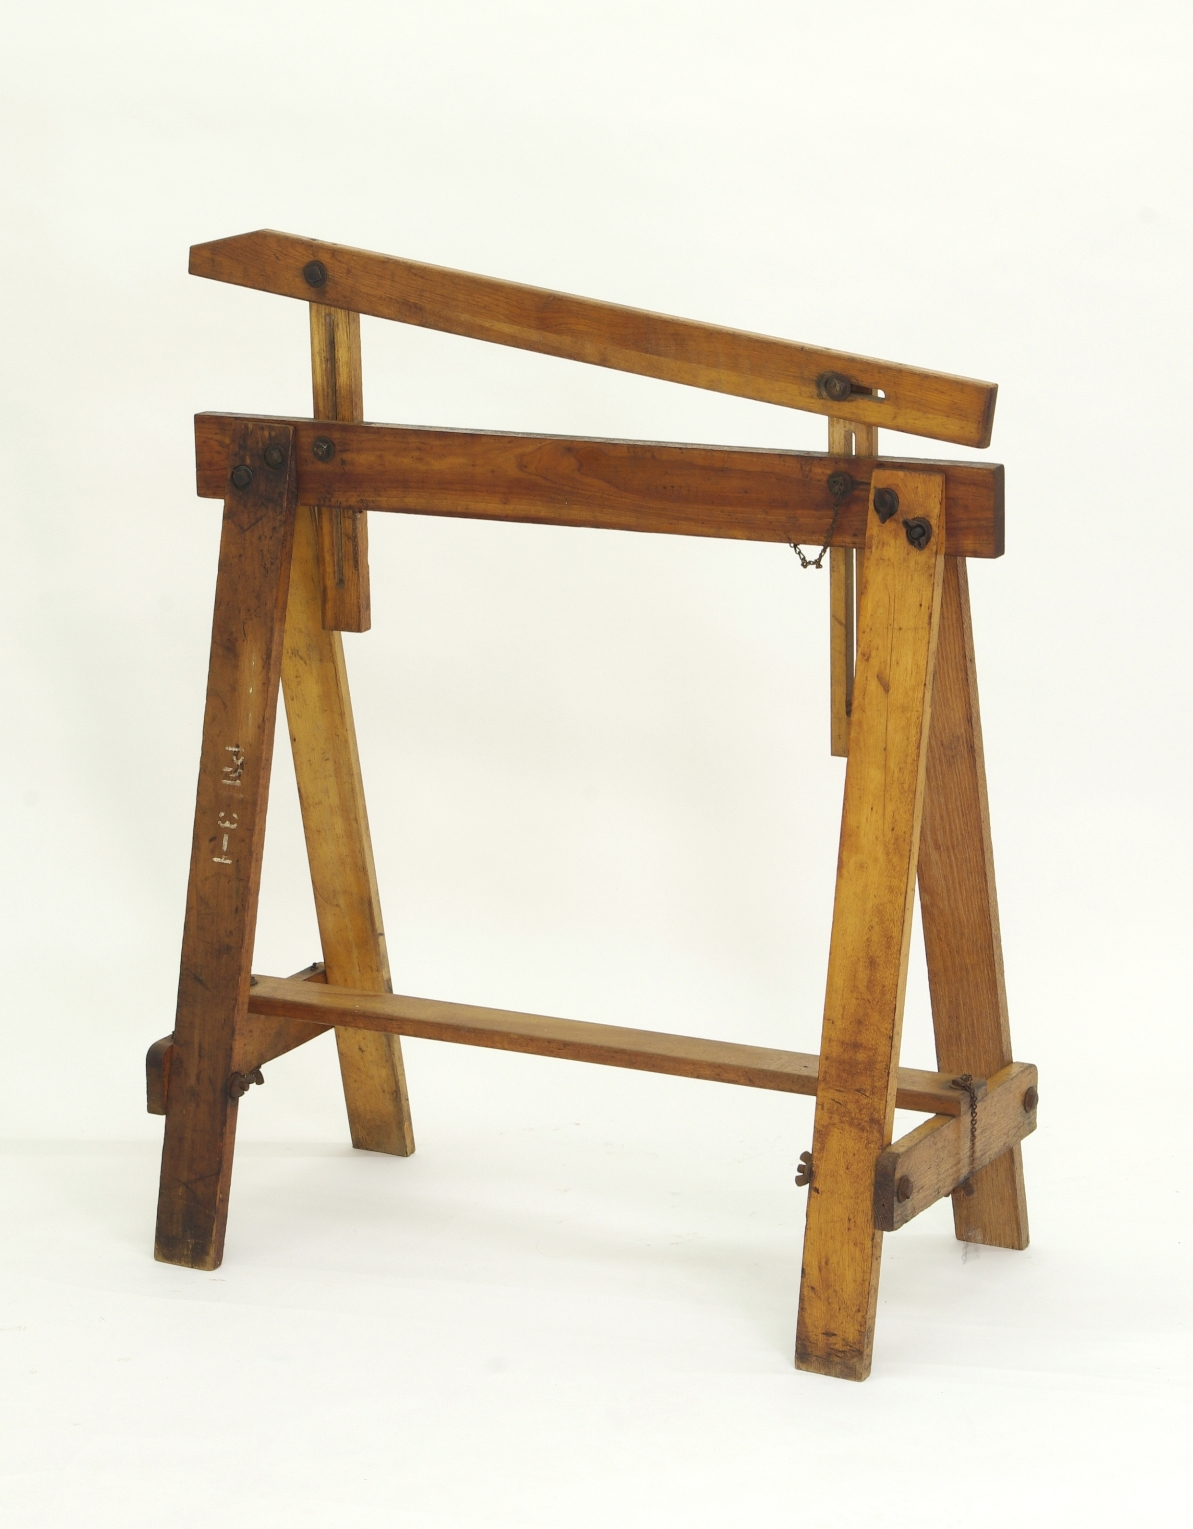 View 6: Pair of Adjustable Sawhorses c. 1920